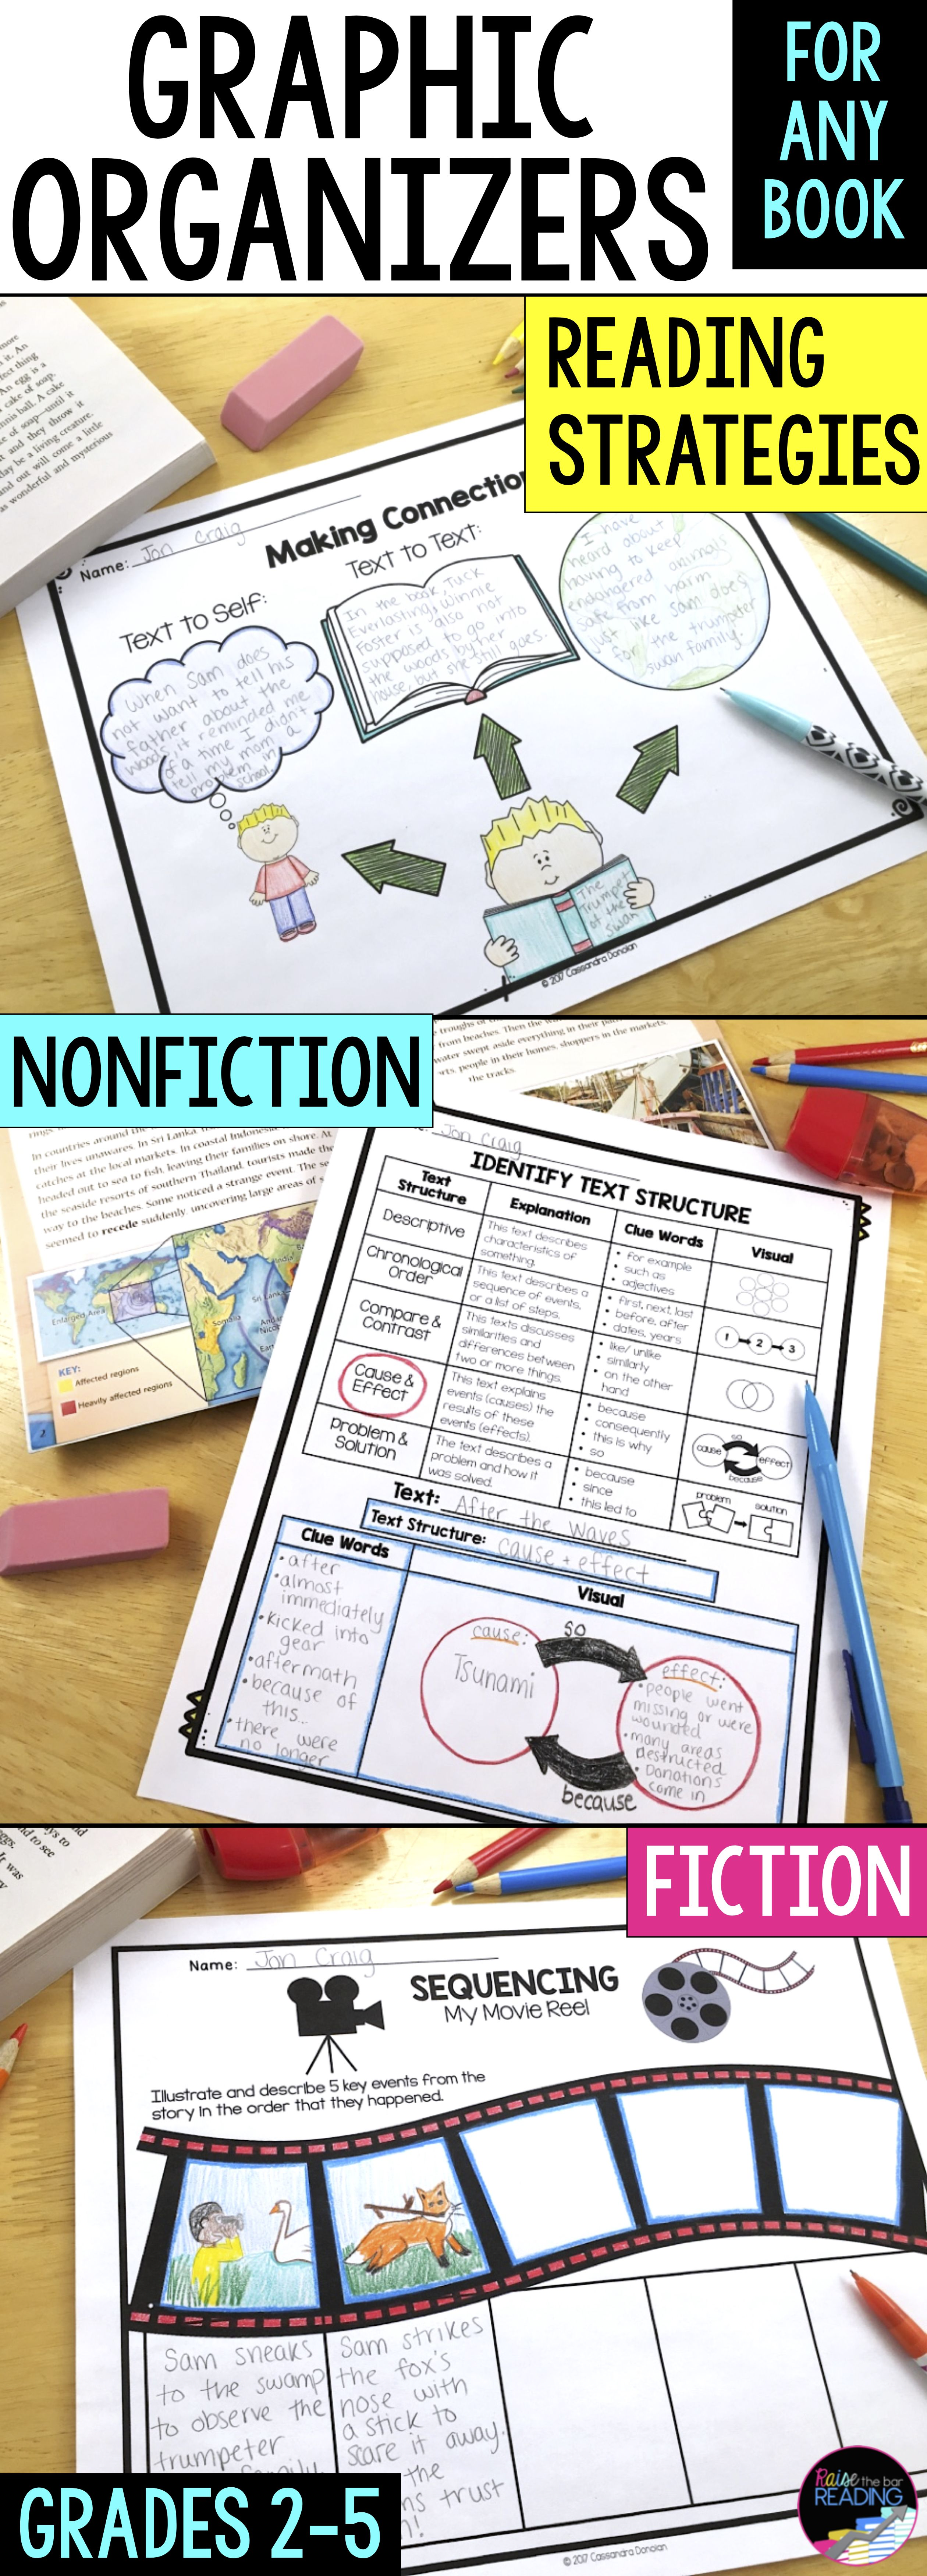 Reading Comprehension Graphic Organizers - Strategies, Fiction ...